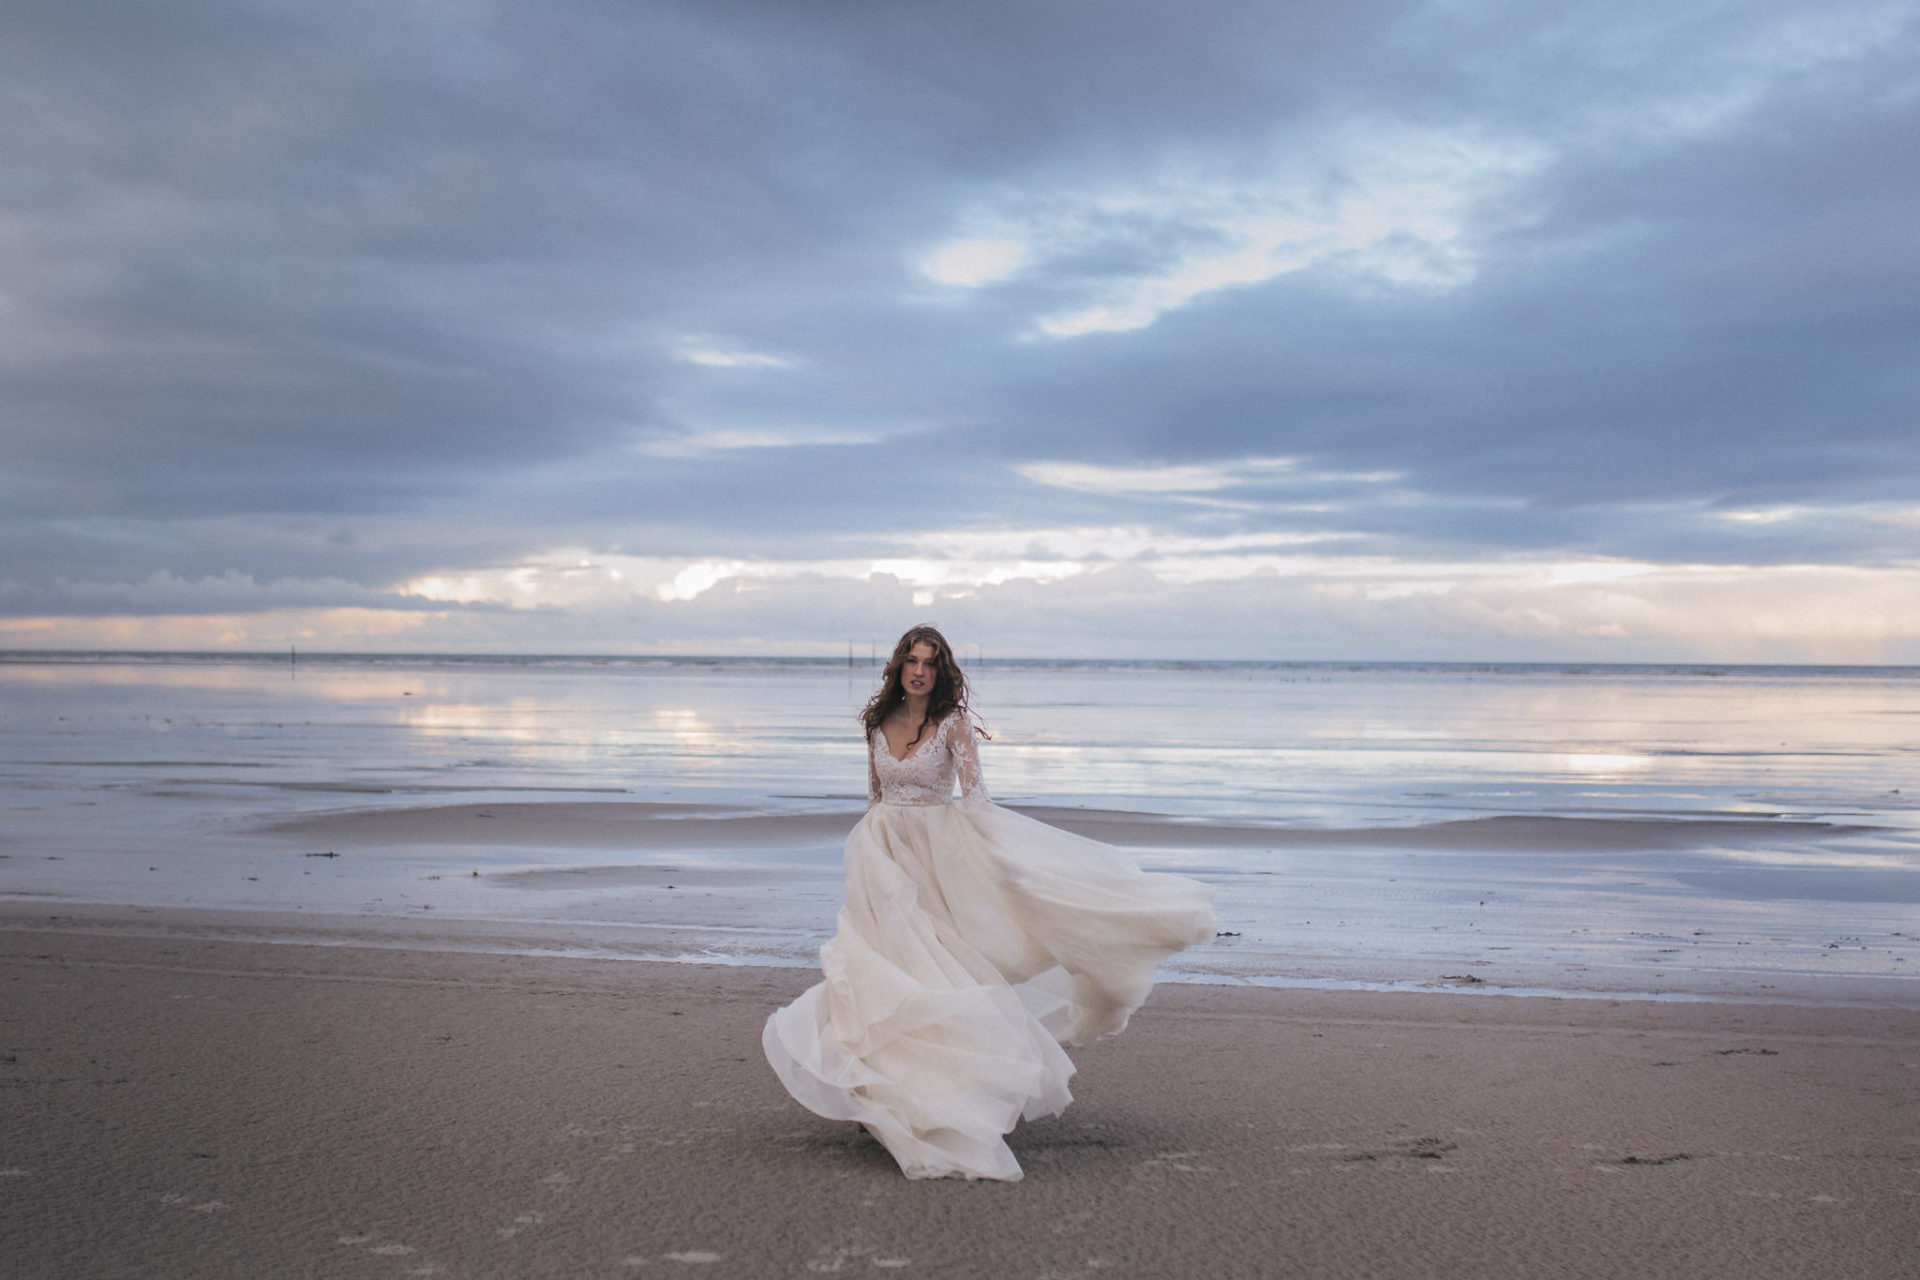 bridal portrait beach-elfenkleid-couture bridal gown-wedding photographer germany